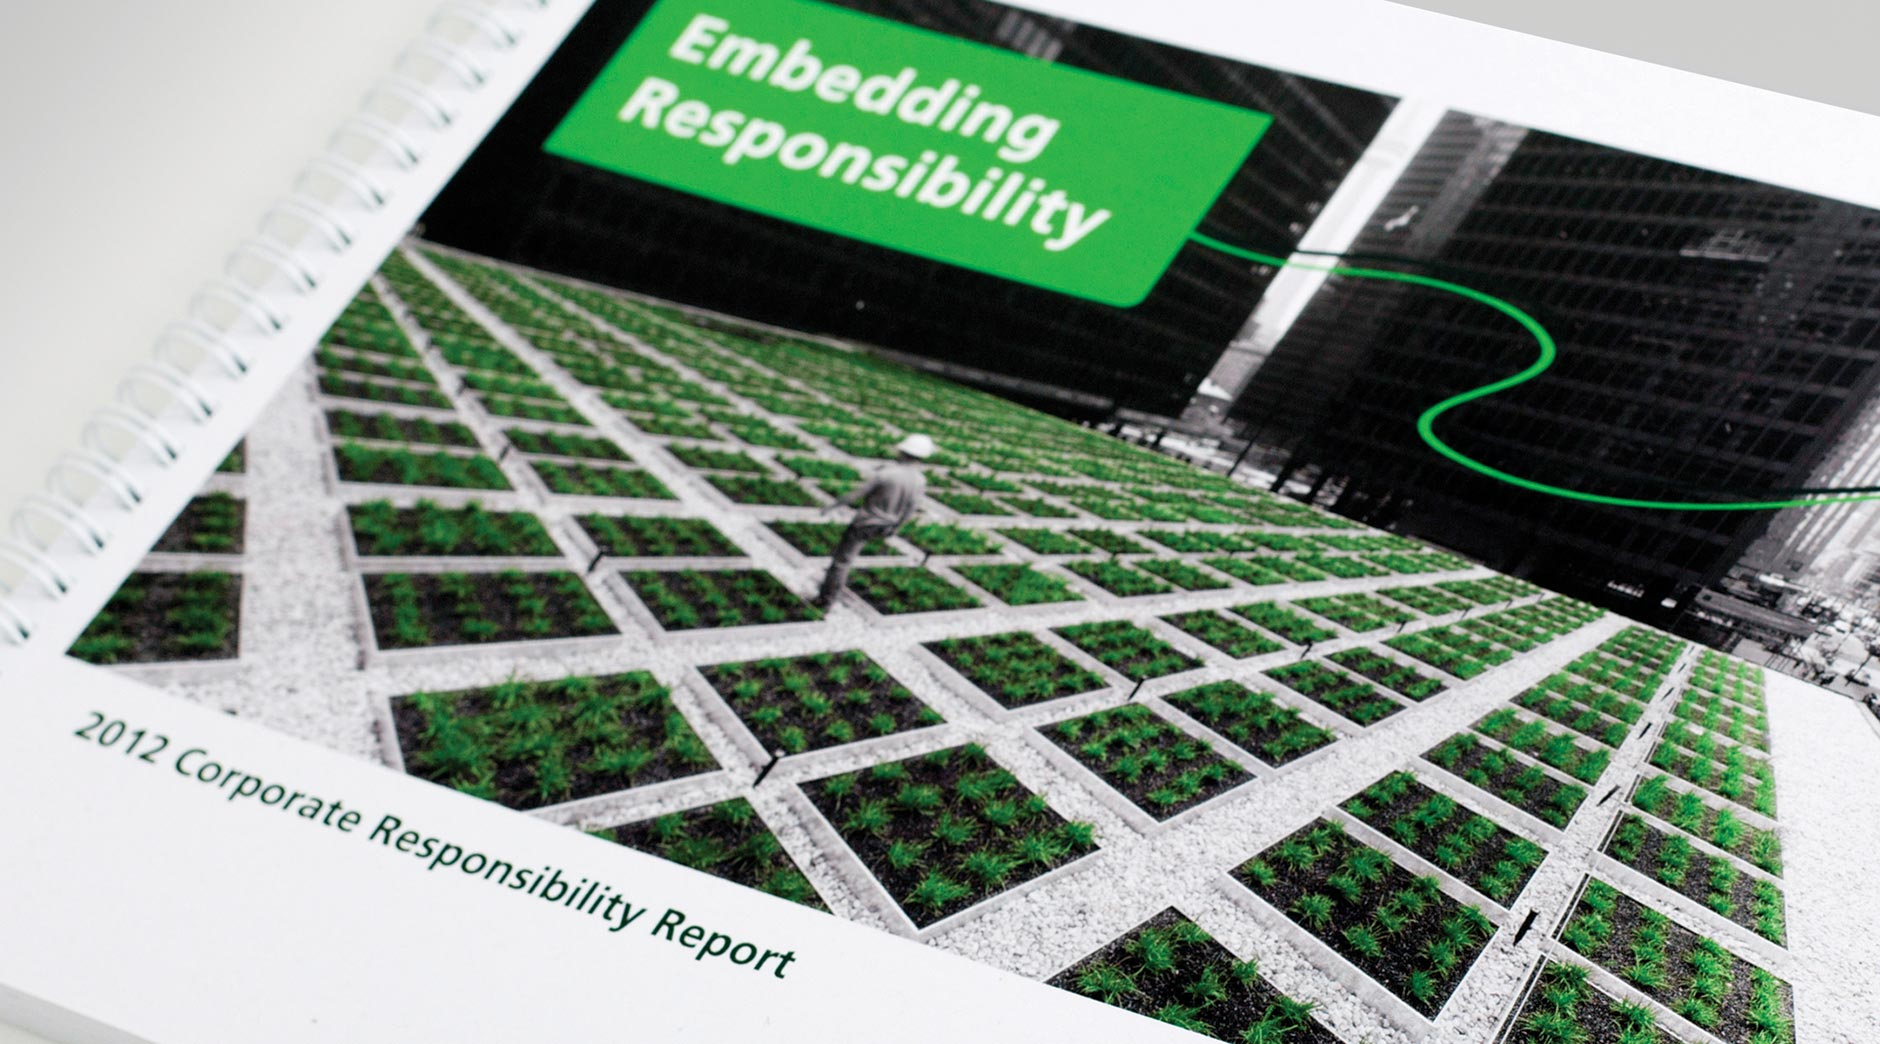 TD Corporate Responsibility Report